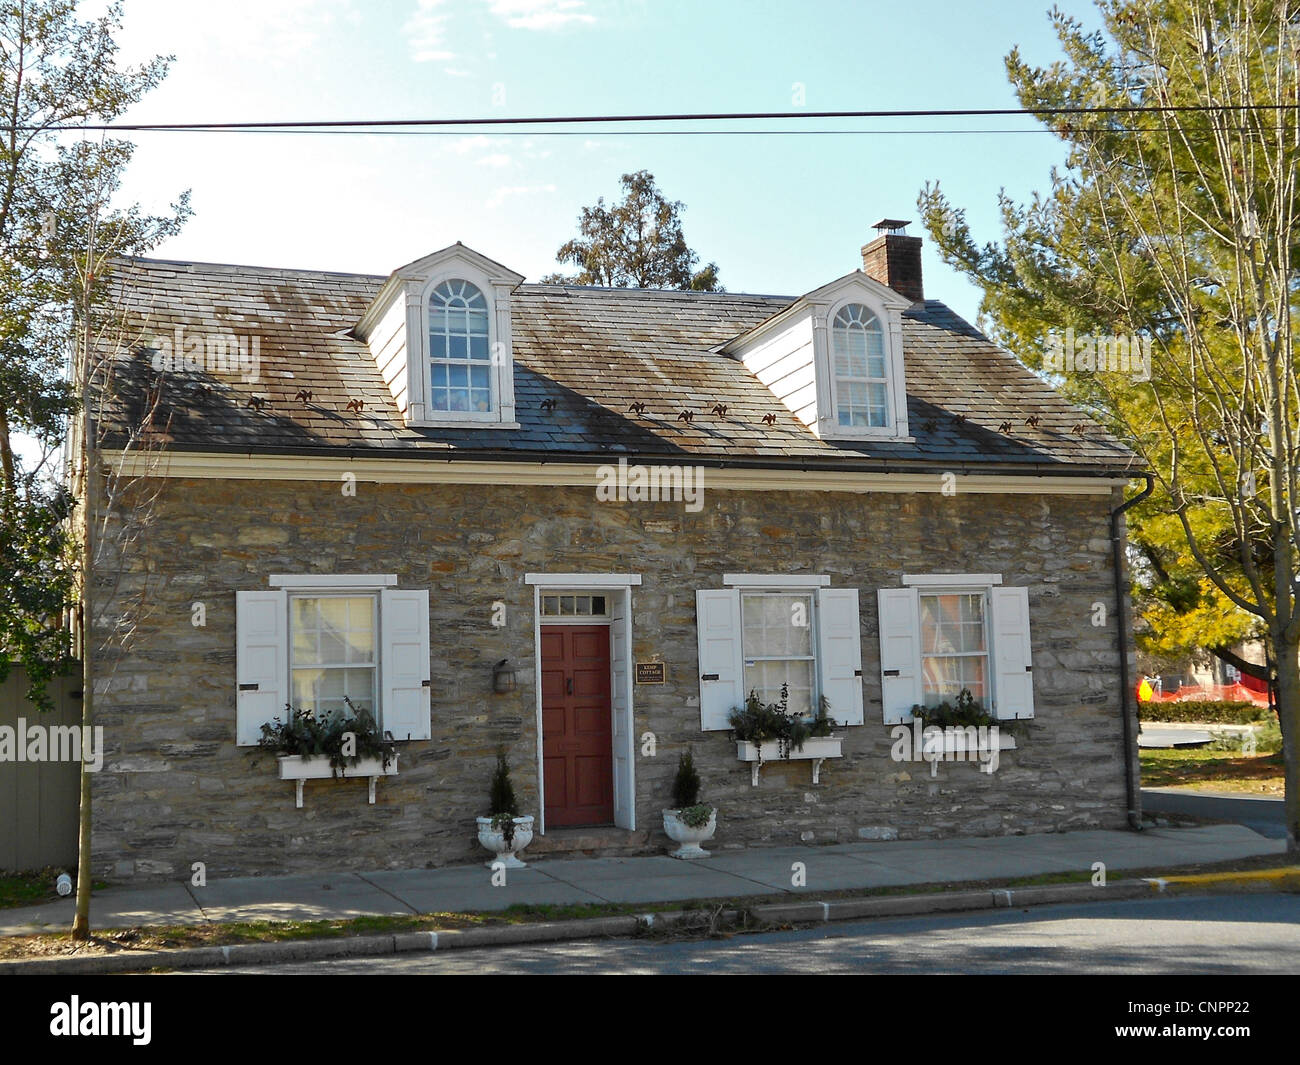 Kemp Cottage in the Lititz (PA) historic district on the